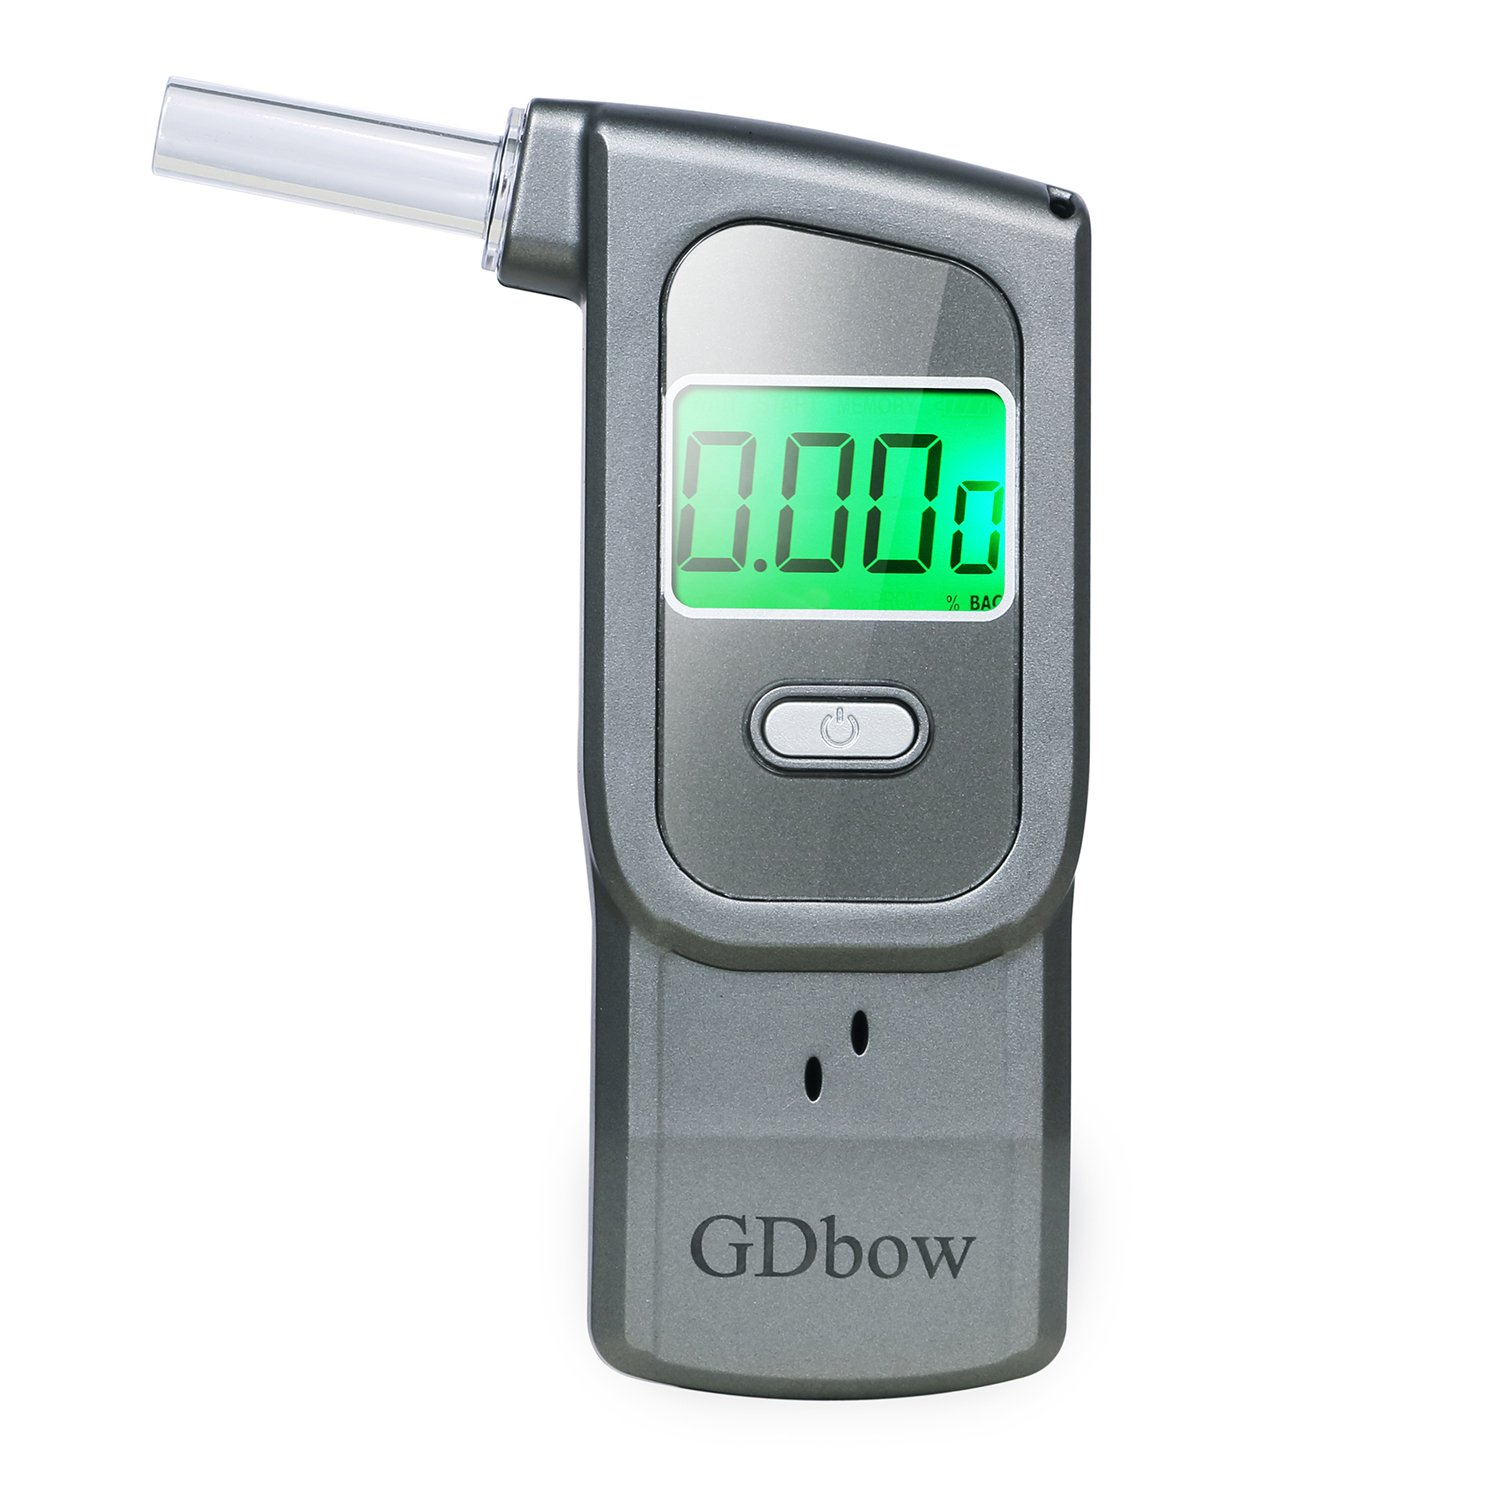 GDbow Portable Breathalyzer Alcohol Tester Recording 32 Testing Results with 5 Mouthpieces for Personal Use -Lead